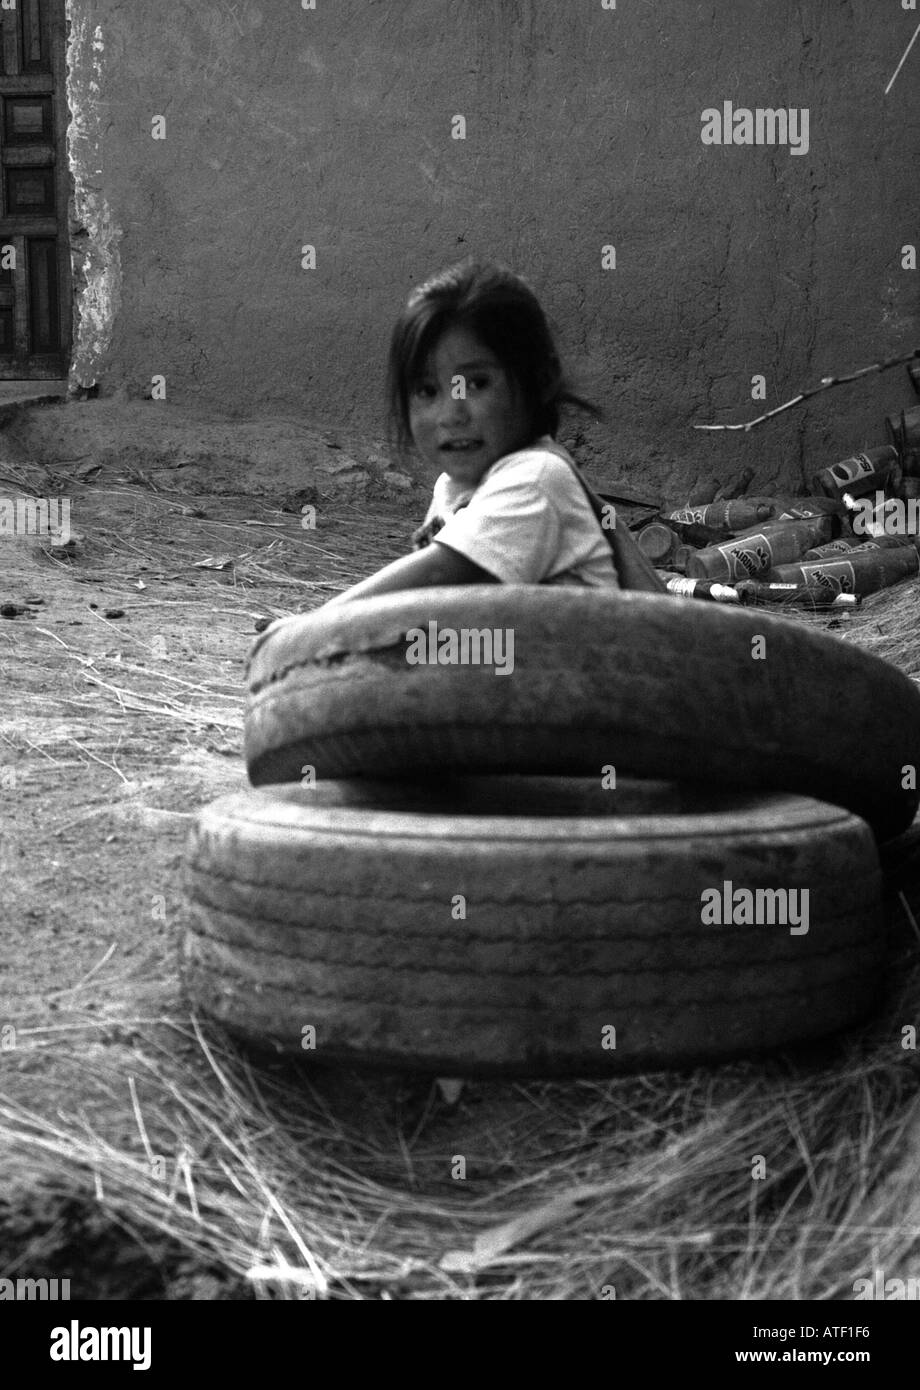 Indigenous child girl smile play outdoor ground rubber tyre dirt junk bottle Sacred Valley Cuzco Peru South Latin America - Stock Image